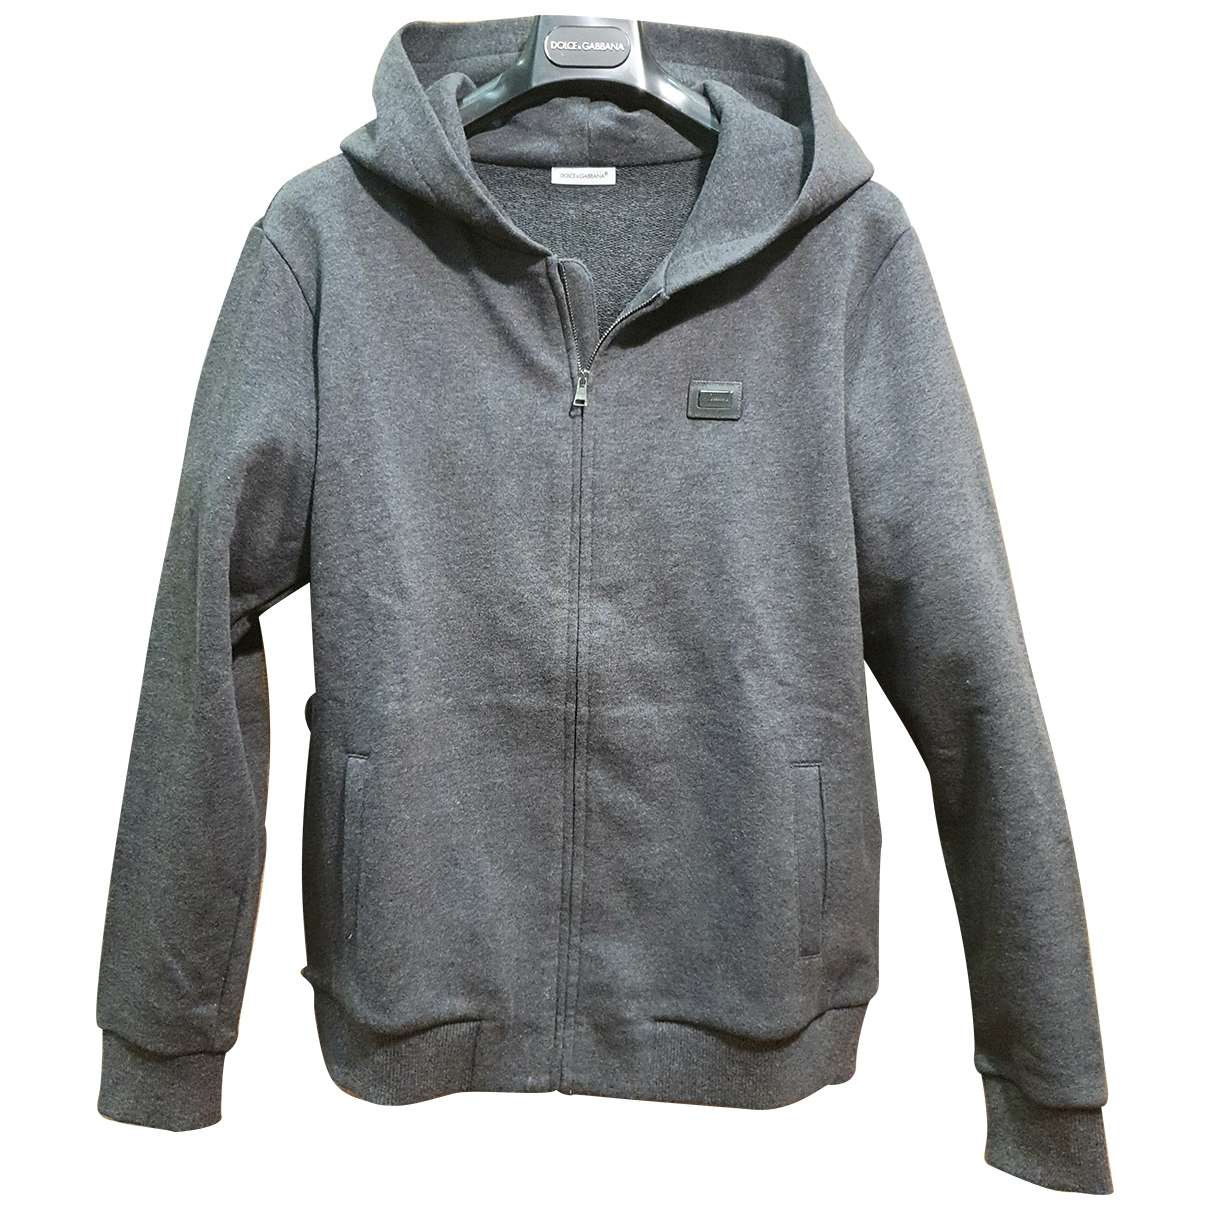 Dolce & Gabbana \N Anthracite Cotton Knitwear for Kids 12 years - XS FR